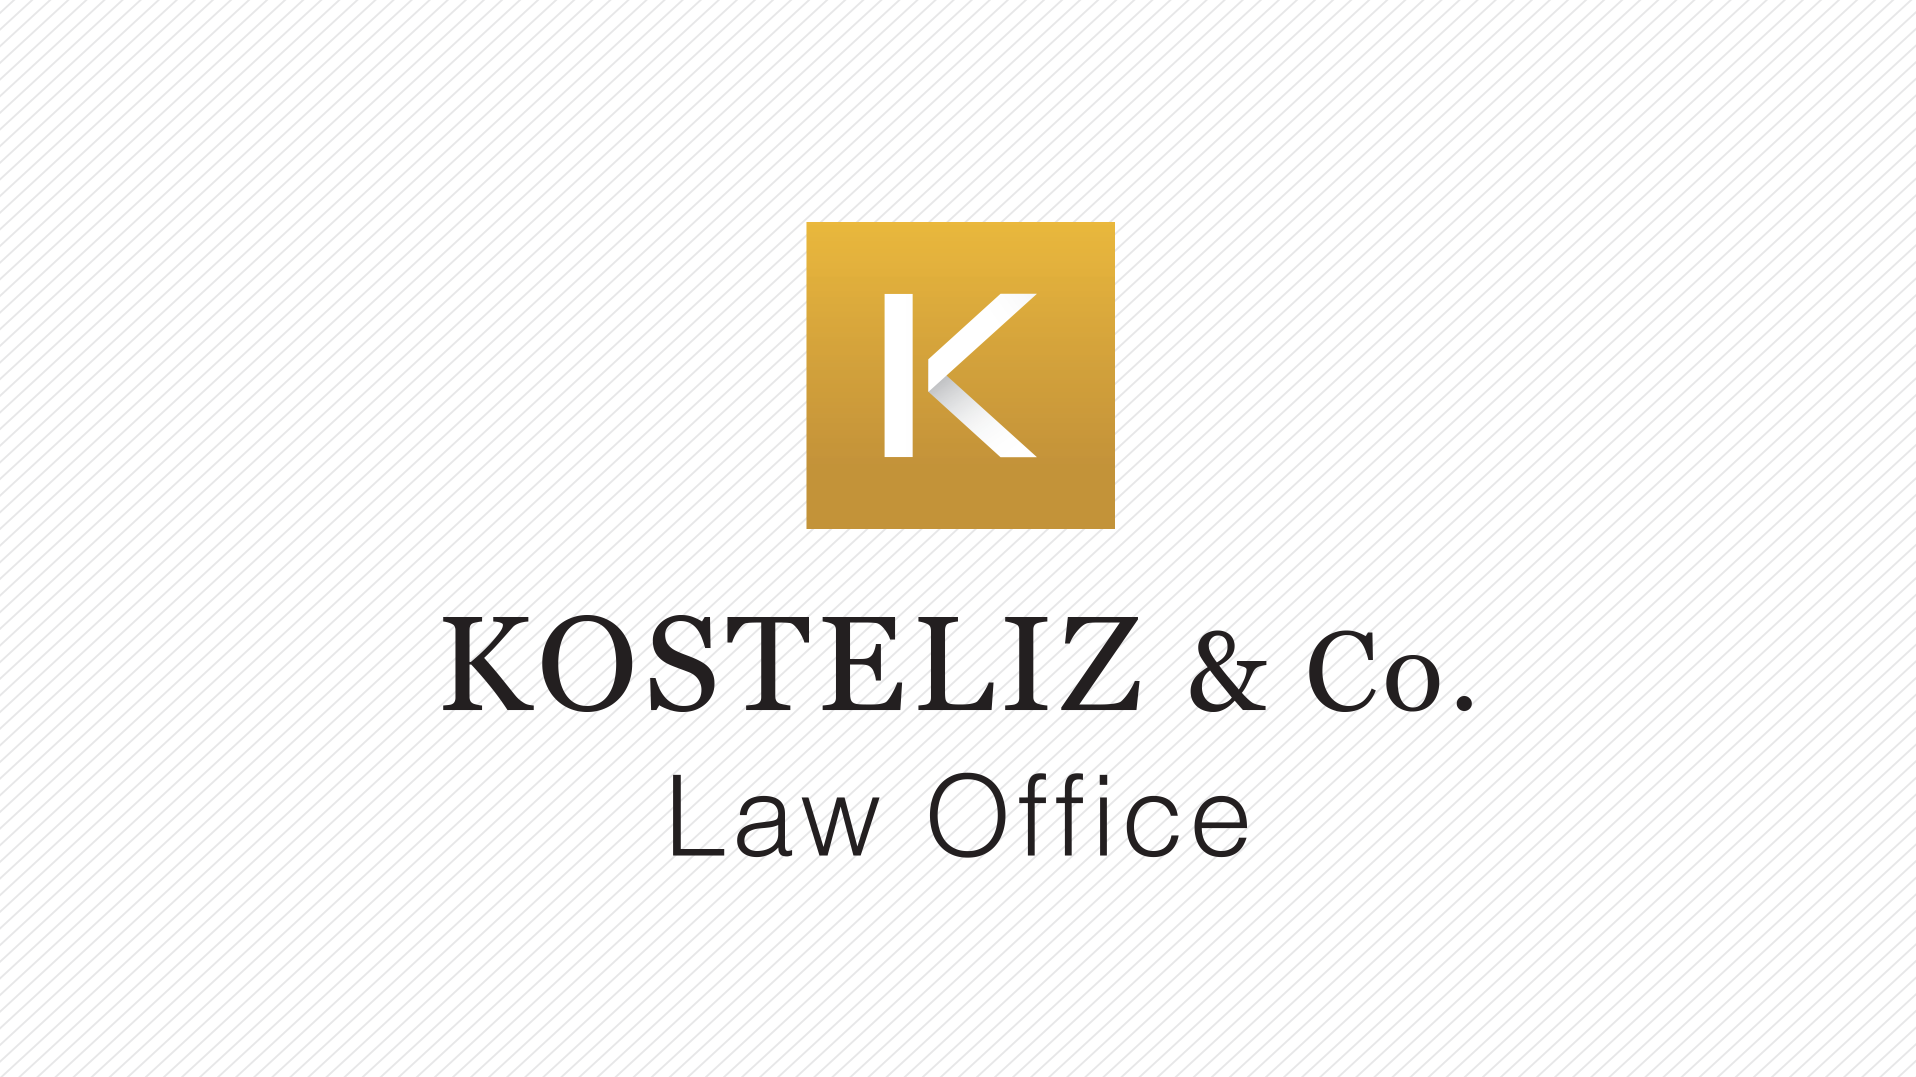 logo - Kostelitz & Co